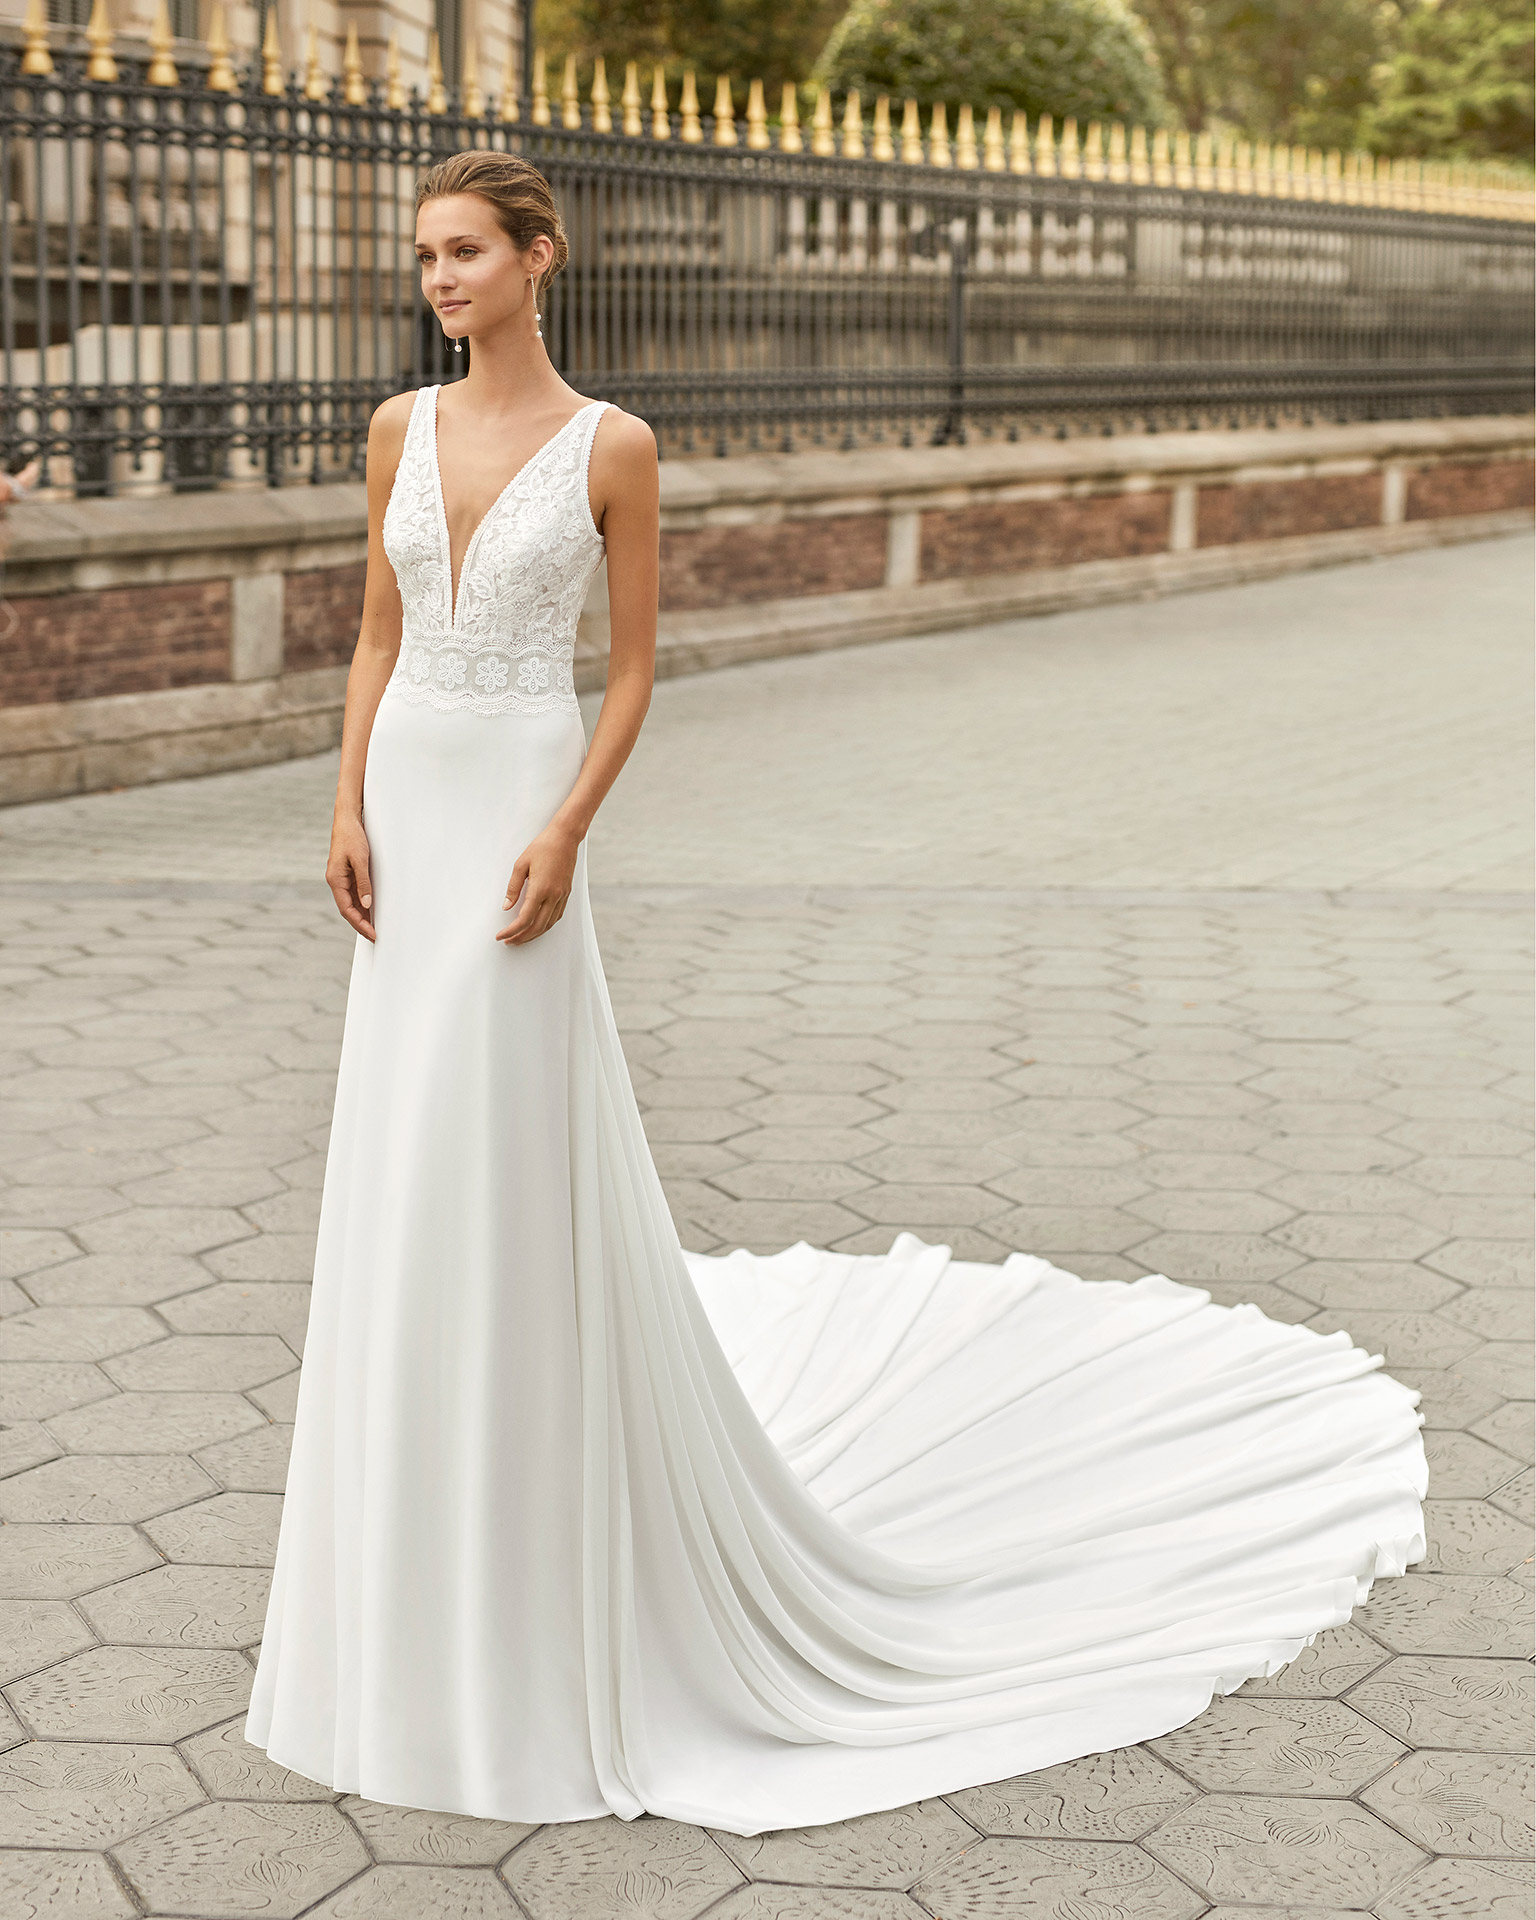 Lightweight wedding dress in georgette and lace. Deep-plunge neckline and V-back. 2022  Collection.